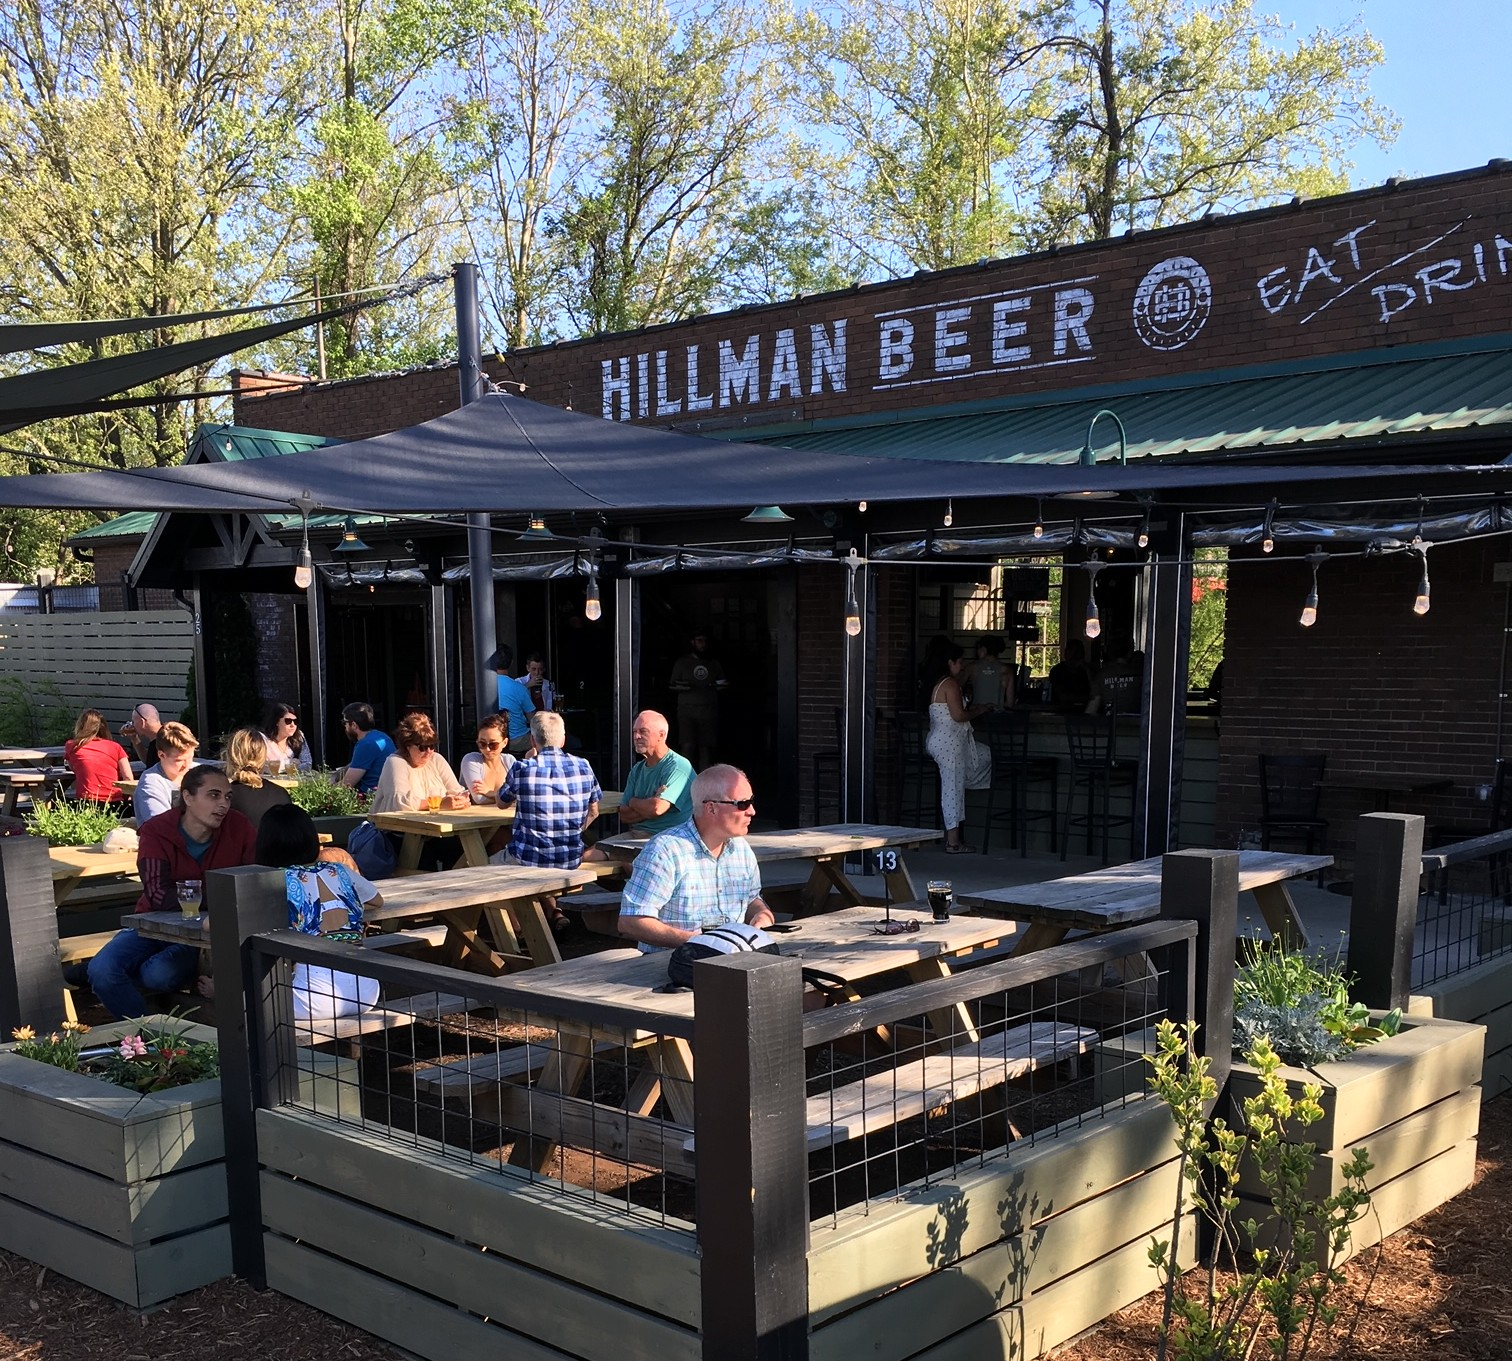 Hillman Beer location with picnic tables on patio